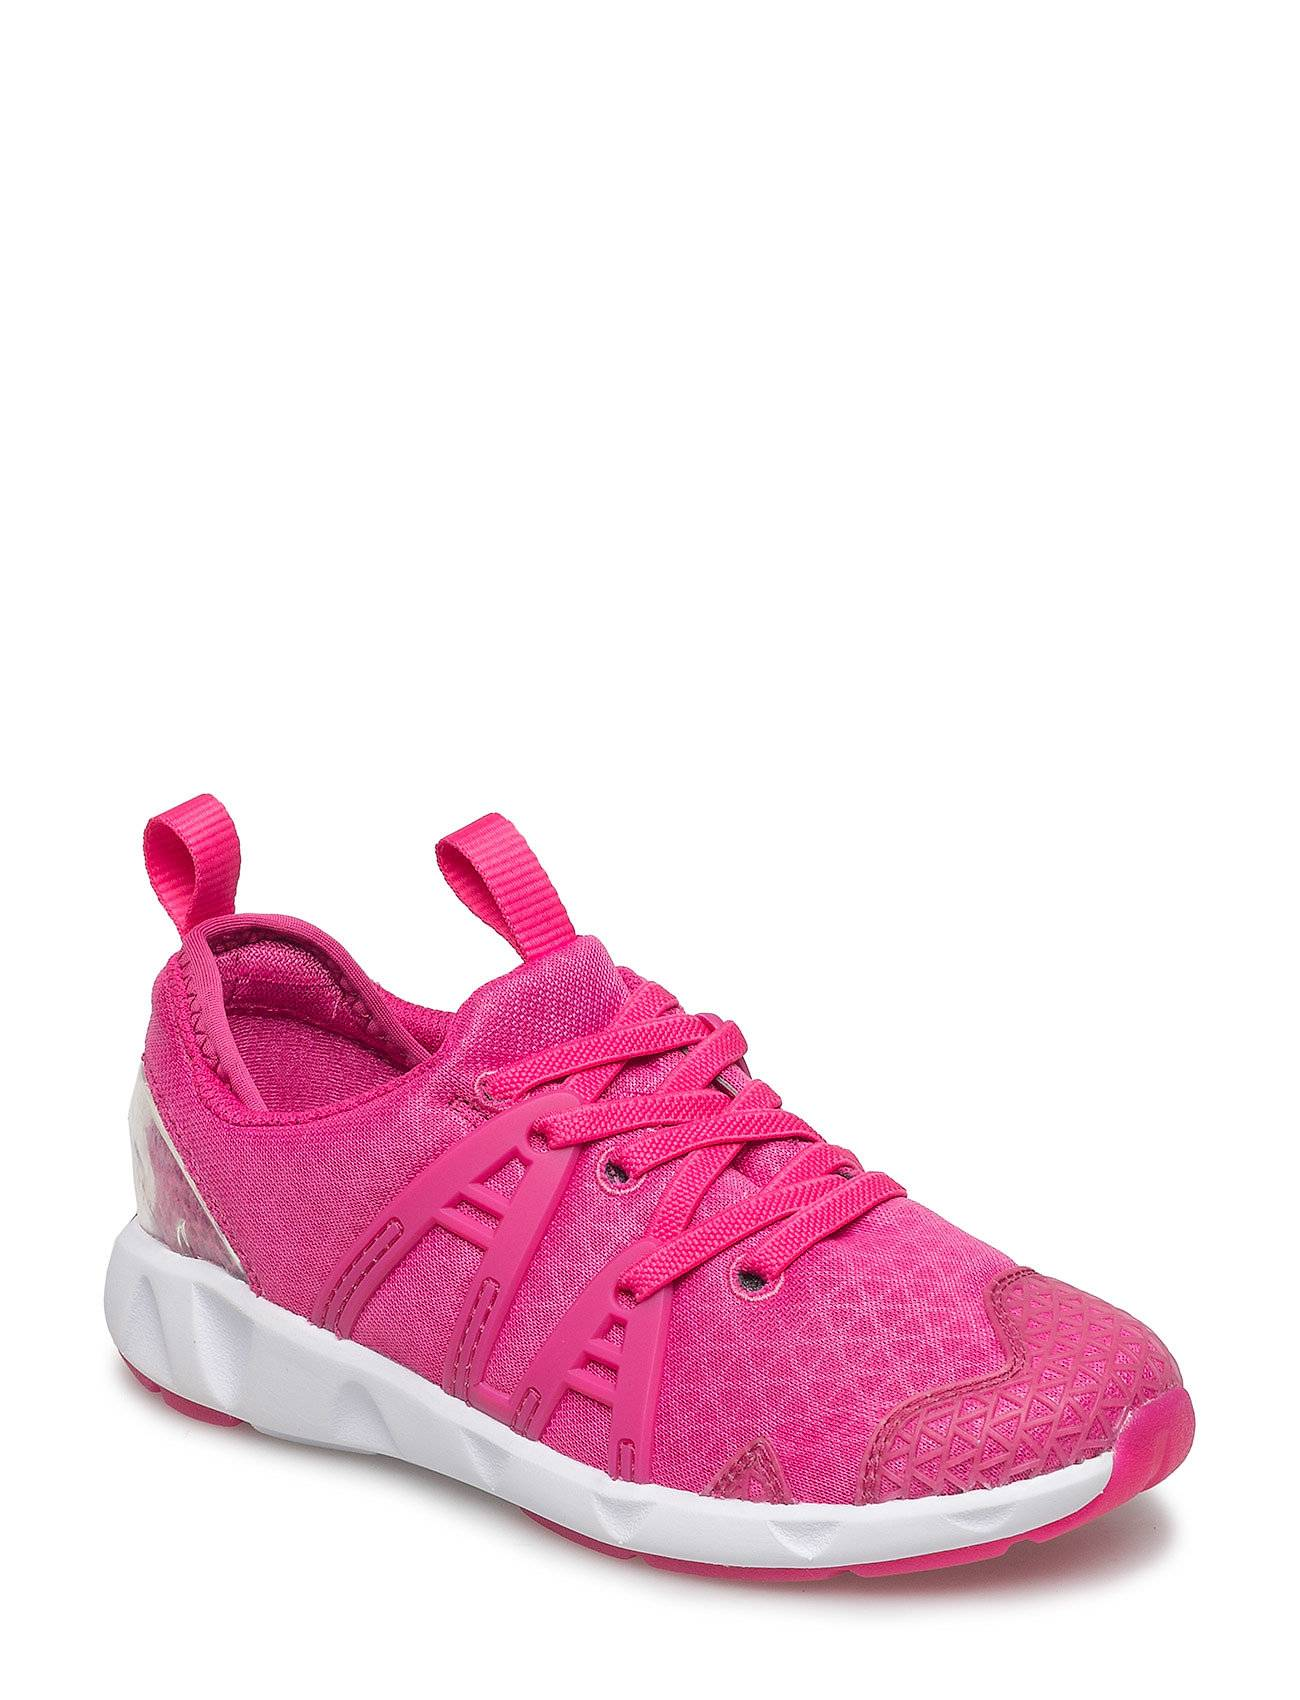 Clarks Luminous Glo